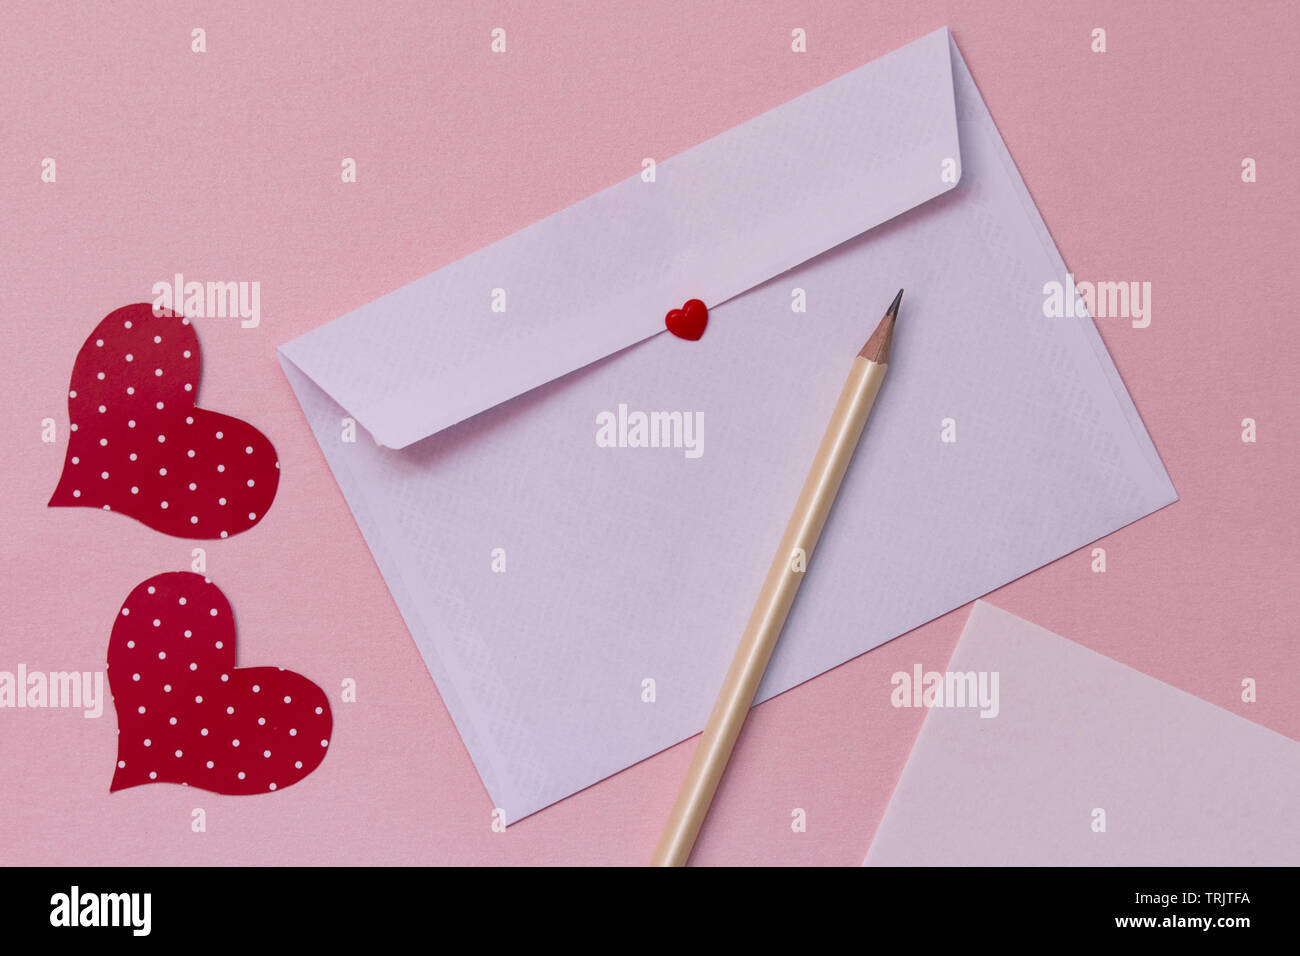 Love letter on a pink background. white paper envelope mock up. love correspondence concept - Stock Image